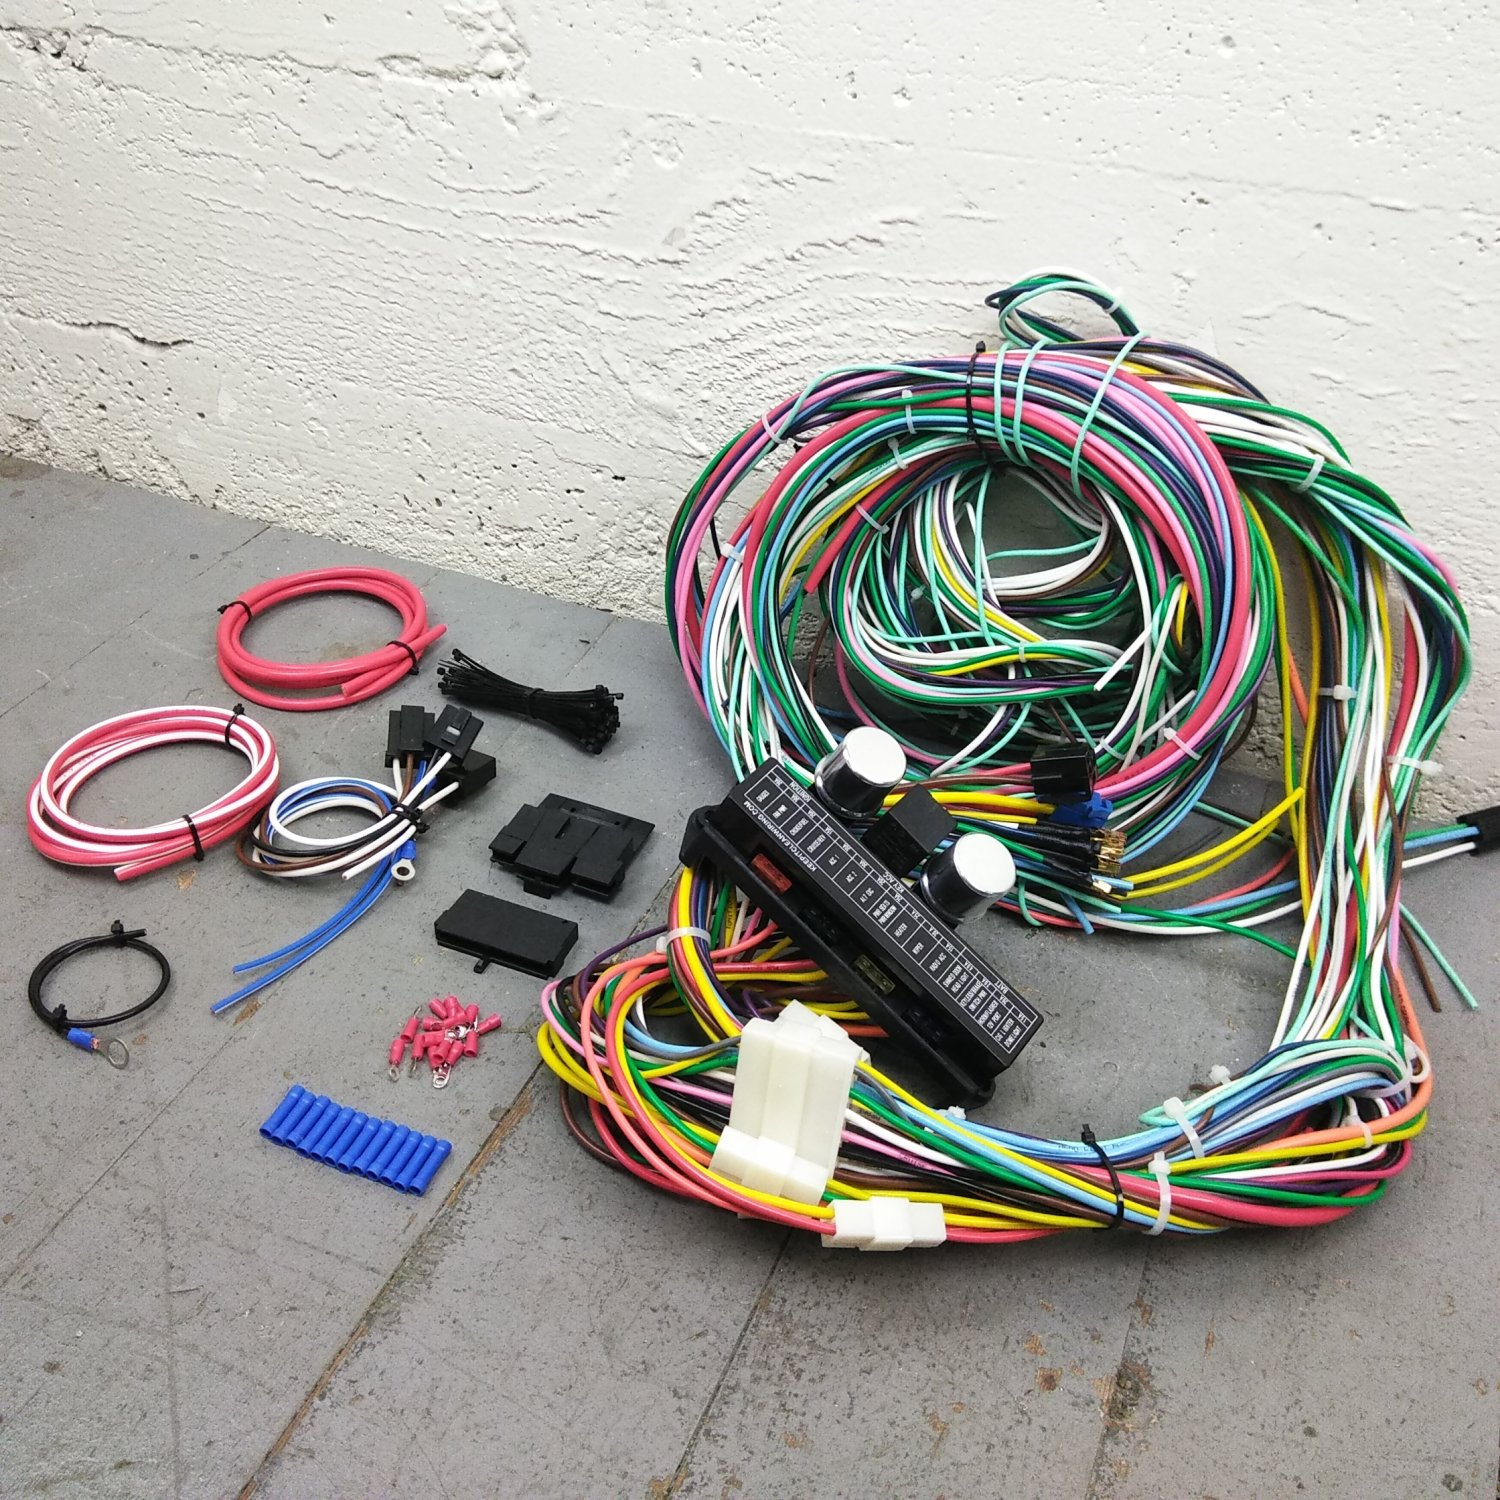 1935 - 1948 Ford Wire Harness Upgrade Kit fits painless complete circuit  update. Bar_Product_Description_C